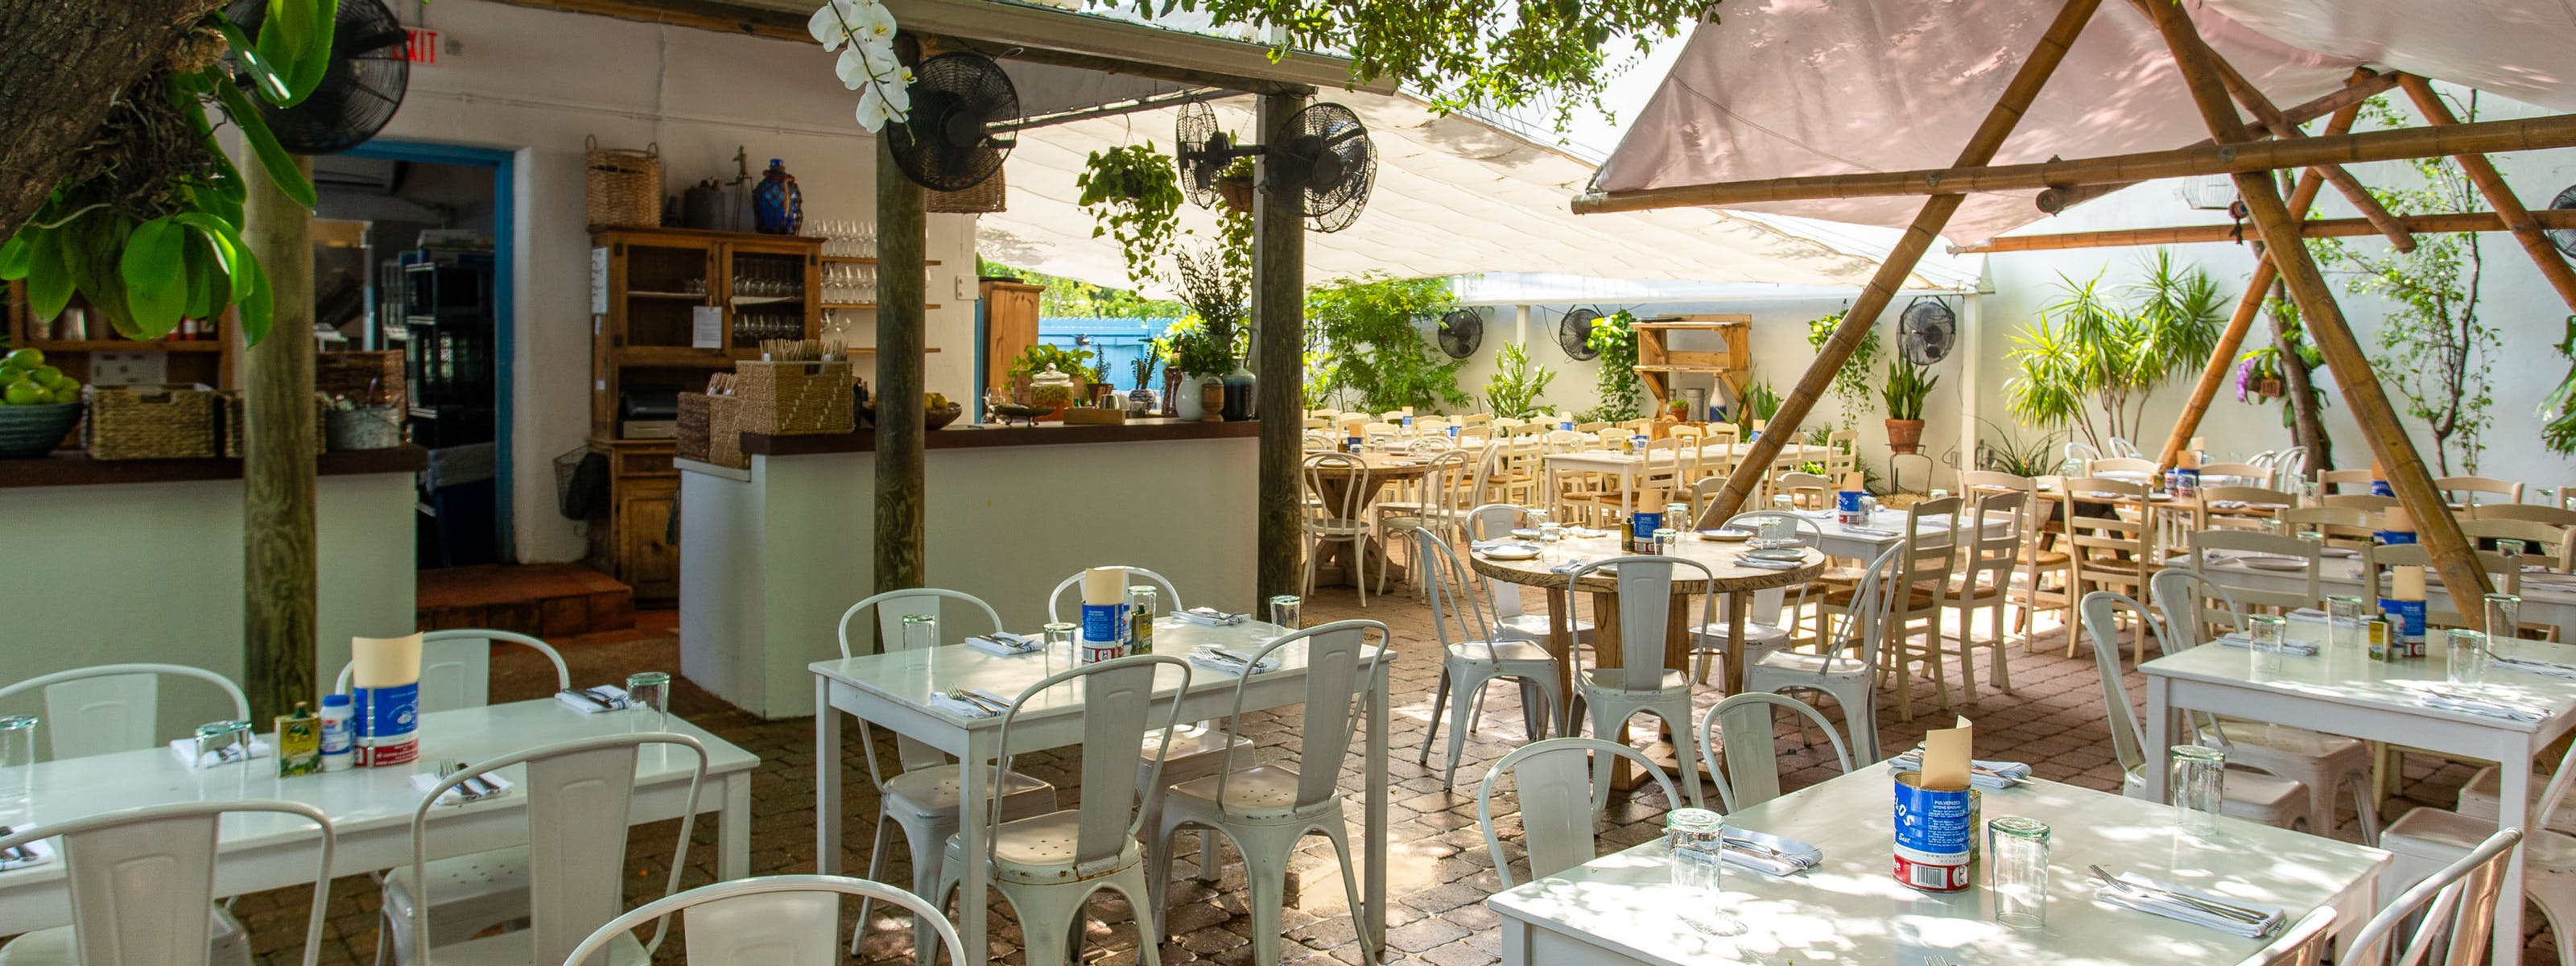 The Best Shaded Patios In Miami - Miami - The Infatuation